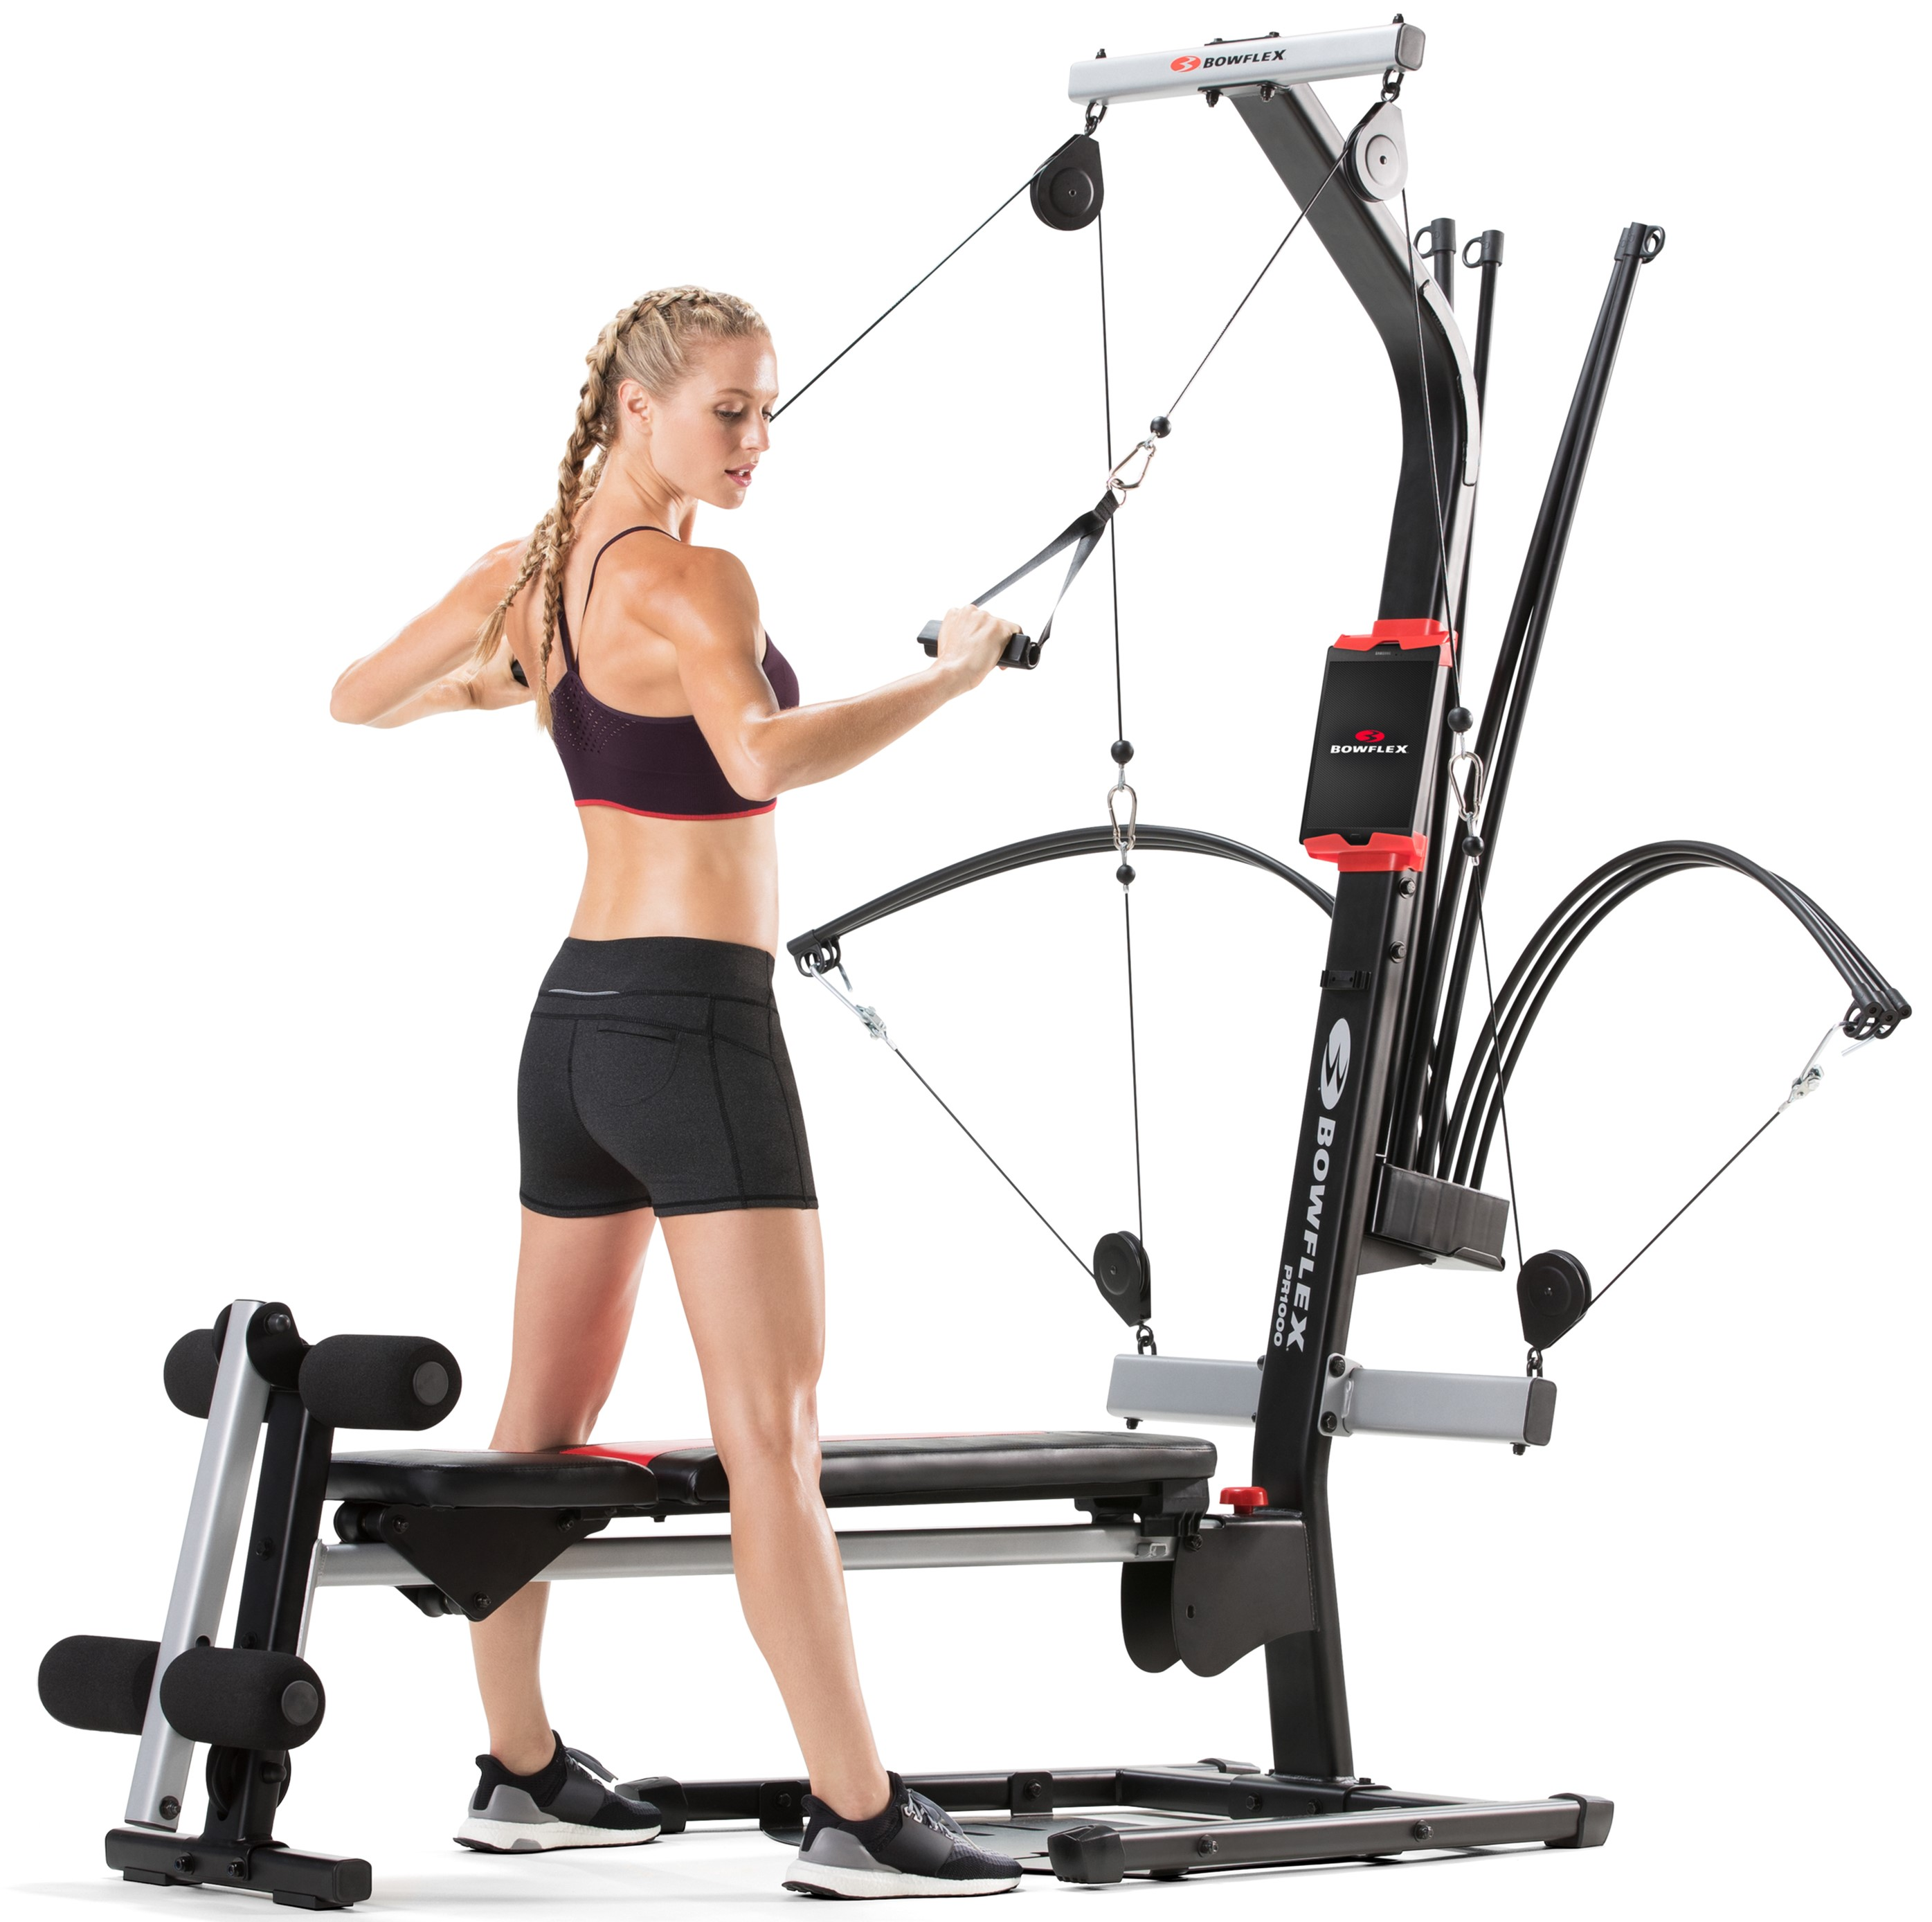 Bowflex PR1000 Home Gym With 25+ Exercises And 200 Lbs. Power Rod Resistance